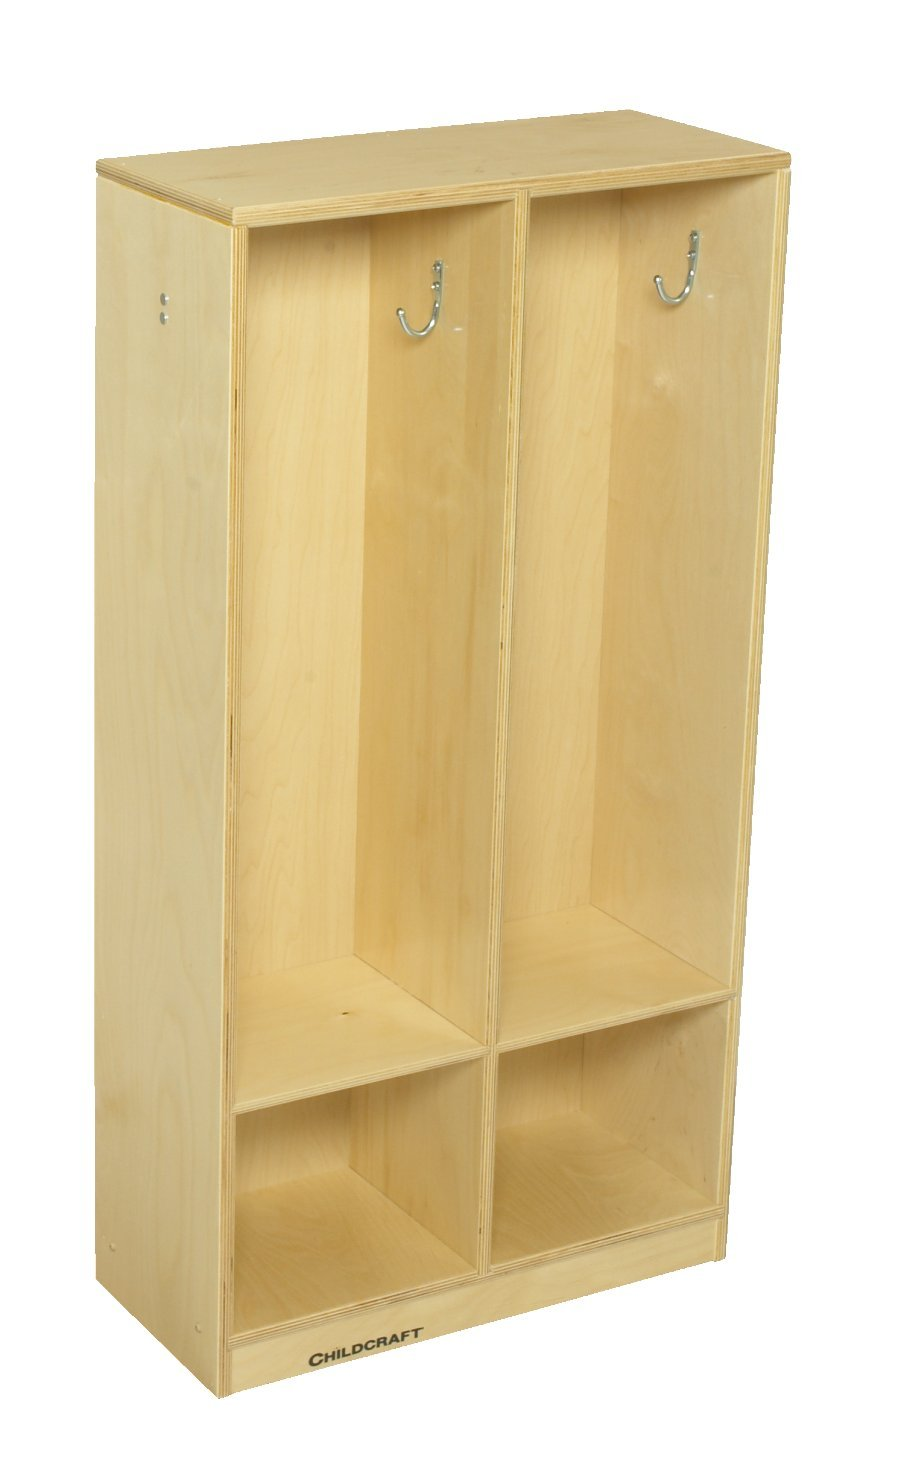 Childcraft 2985 2-Section Coat Locker, 42'' Height, 9.63'' Width, 21.88'' Length, Natural Wood